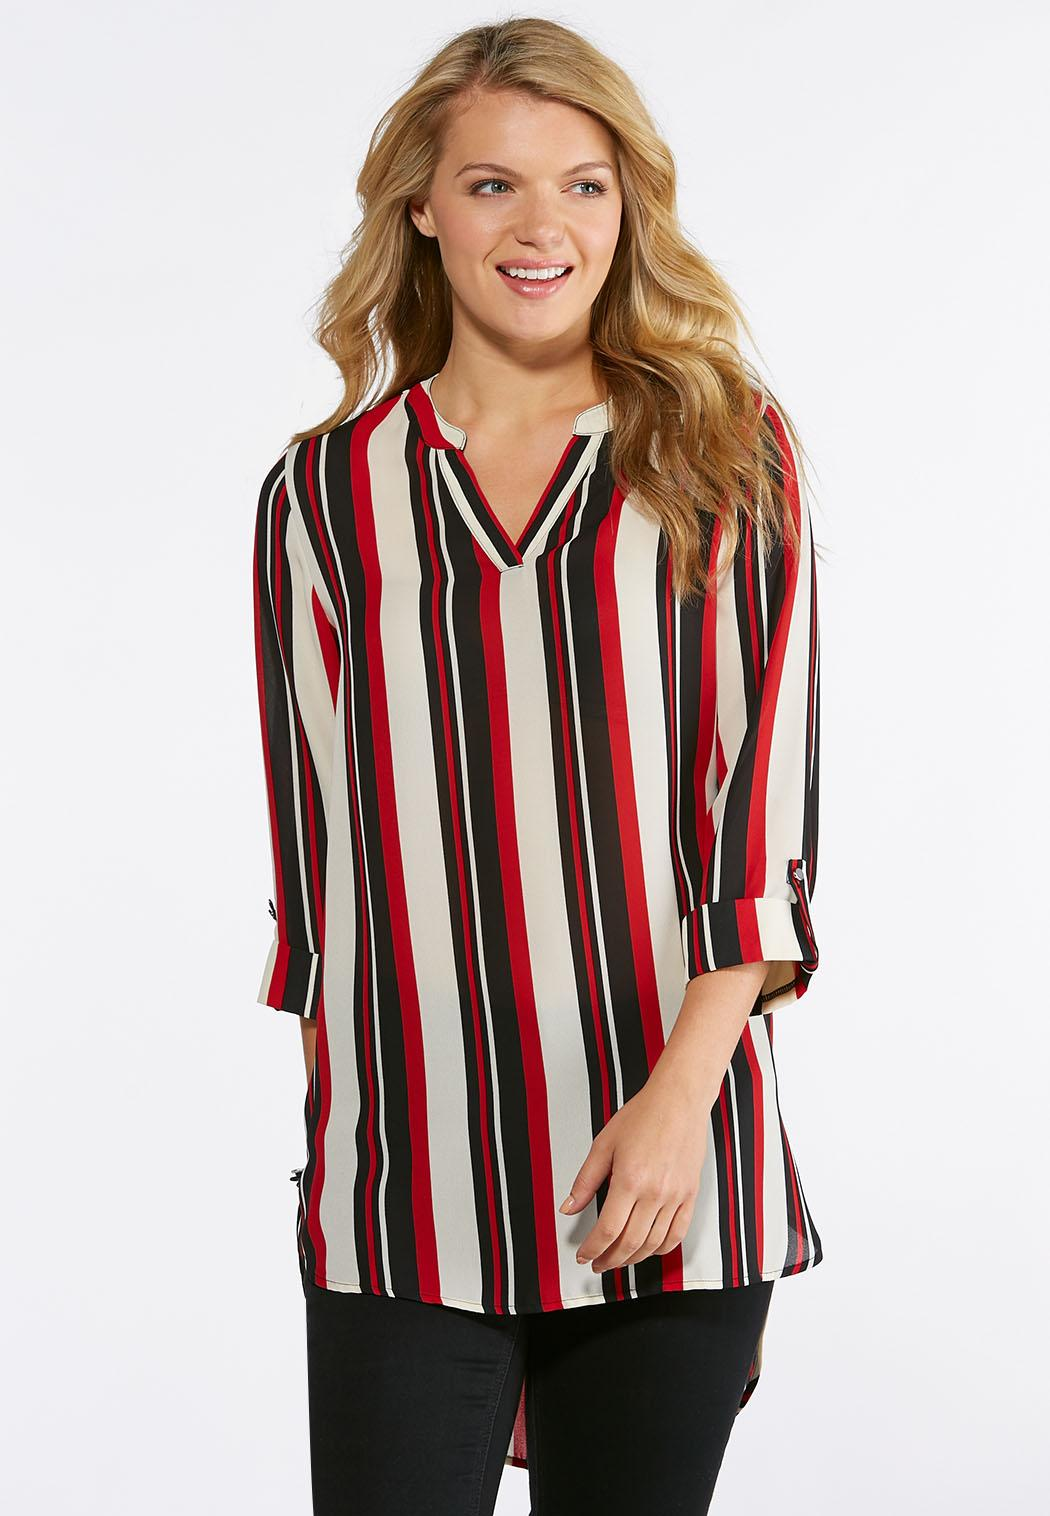 556d1987eb69d Striped High-Low Top Shirts   Blouses Cato Fashions